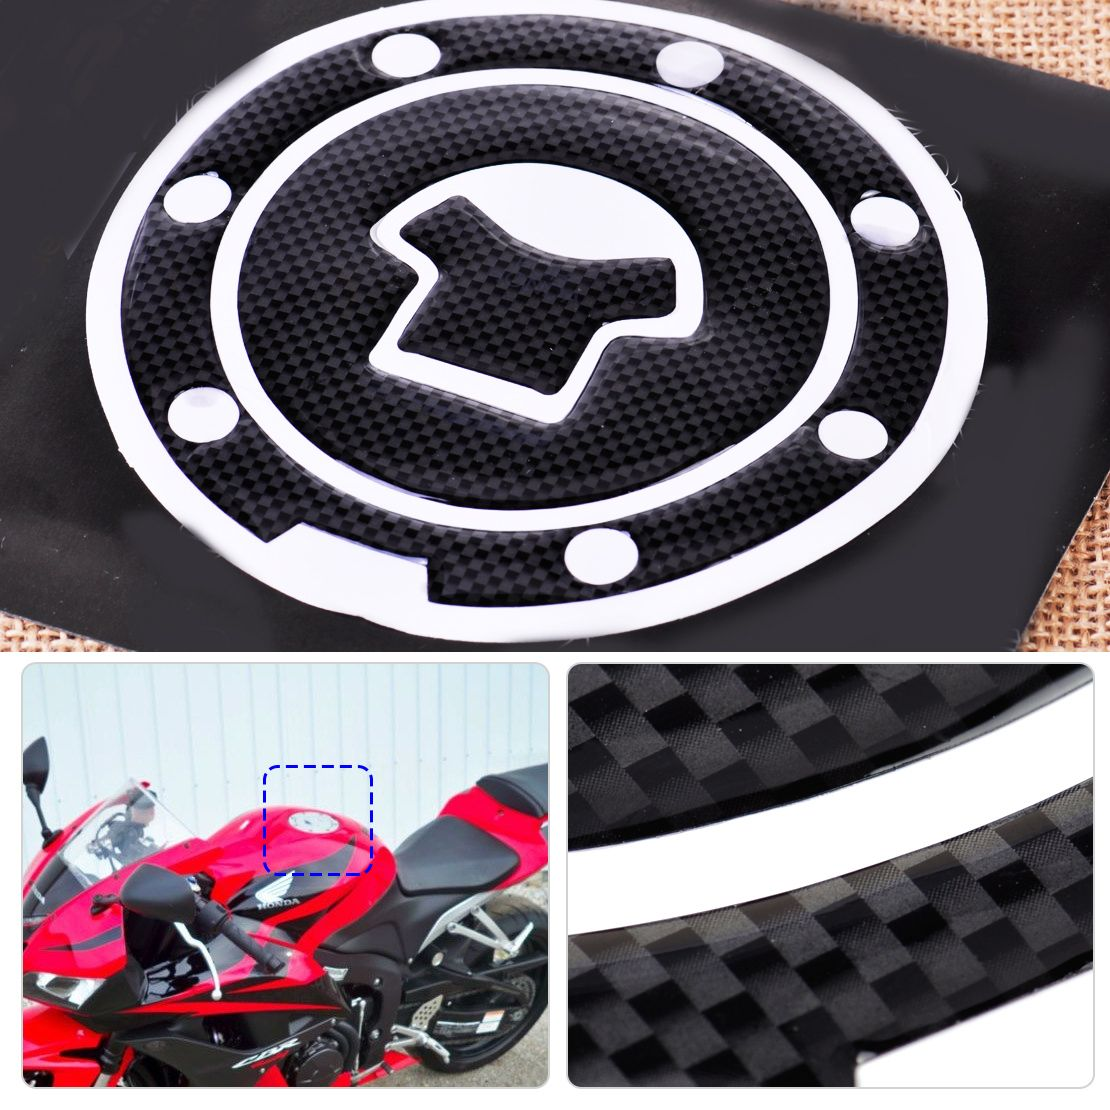 1pc Black Motorcycle Sticker Fuel Gas Cap Tank Cover Pad Decal Protector Fit For Honda Cbr600rr Cb900f Cb65 Motorcycle Stickers Honda Cbr600rr Black Motorcycle [ 1110 x 1110 Pixel ]